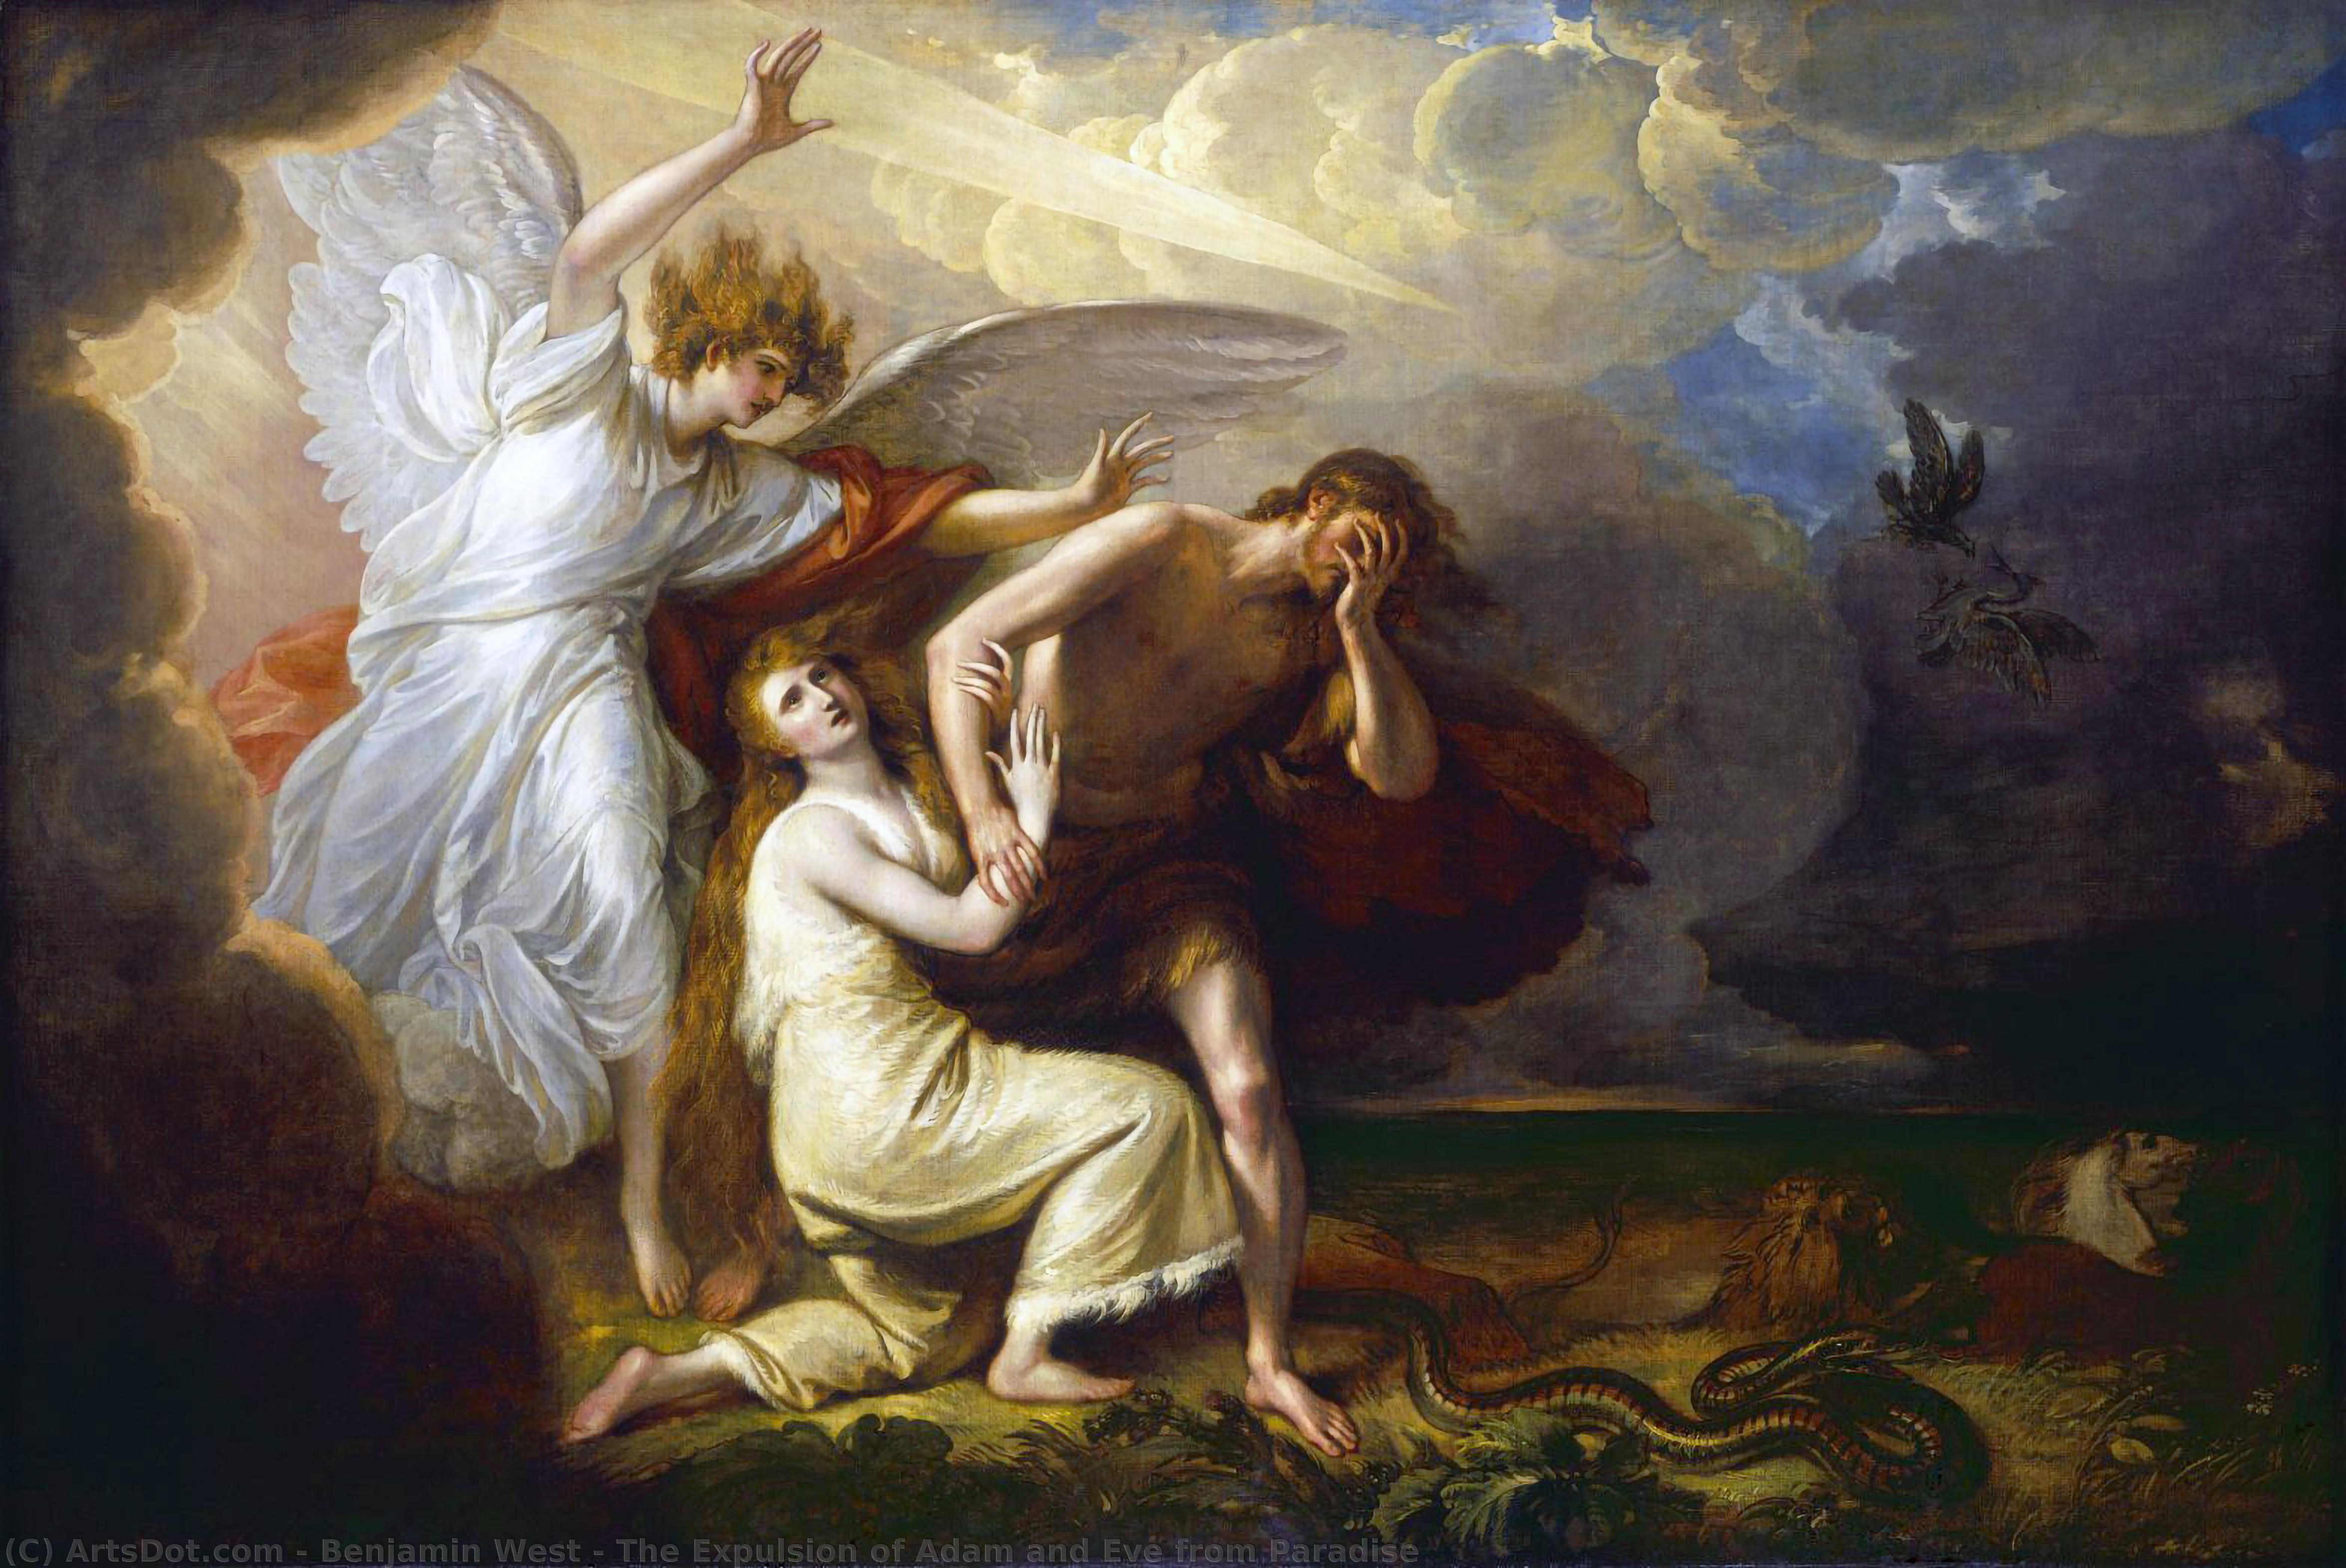 Wikioo.org - The Encyclopedia of Fine Arts - Painting, Artwork by Benjamin West - The Expulsion of Adam and Eve from Paradise